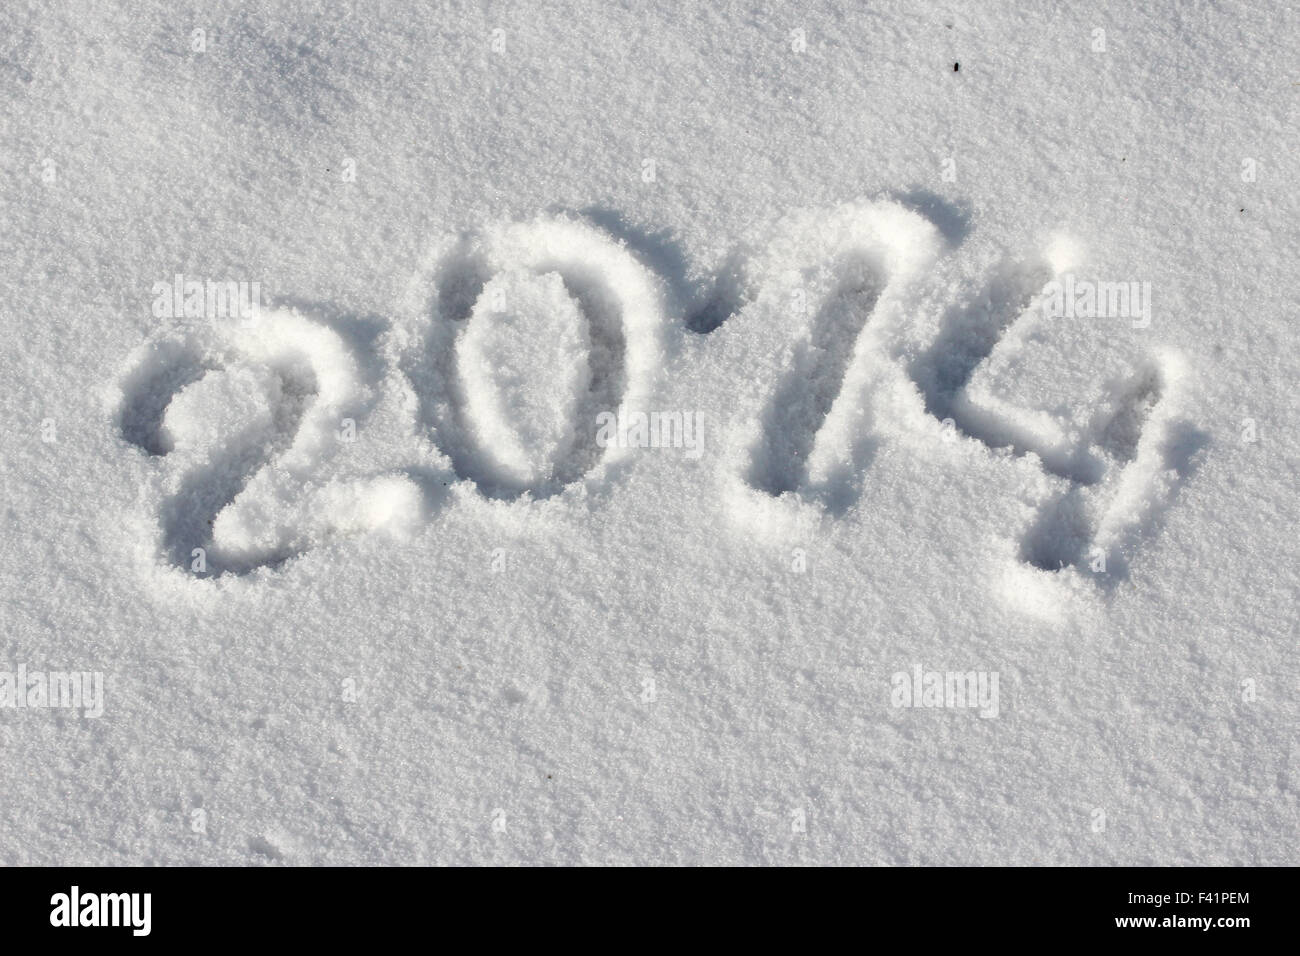 2014 in snow - Stock Image